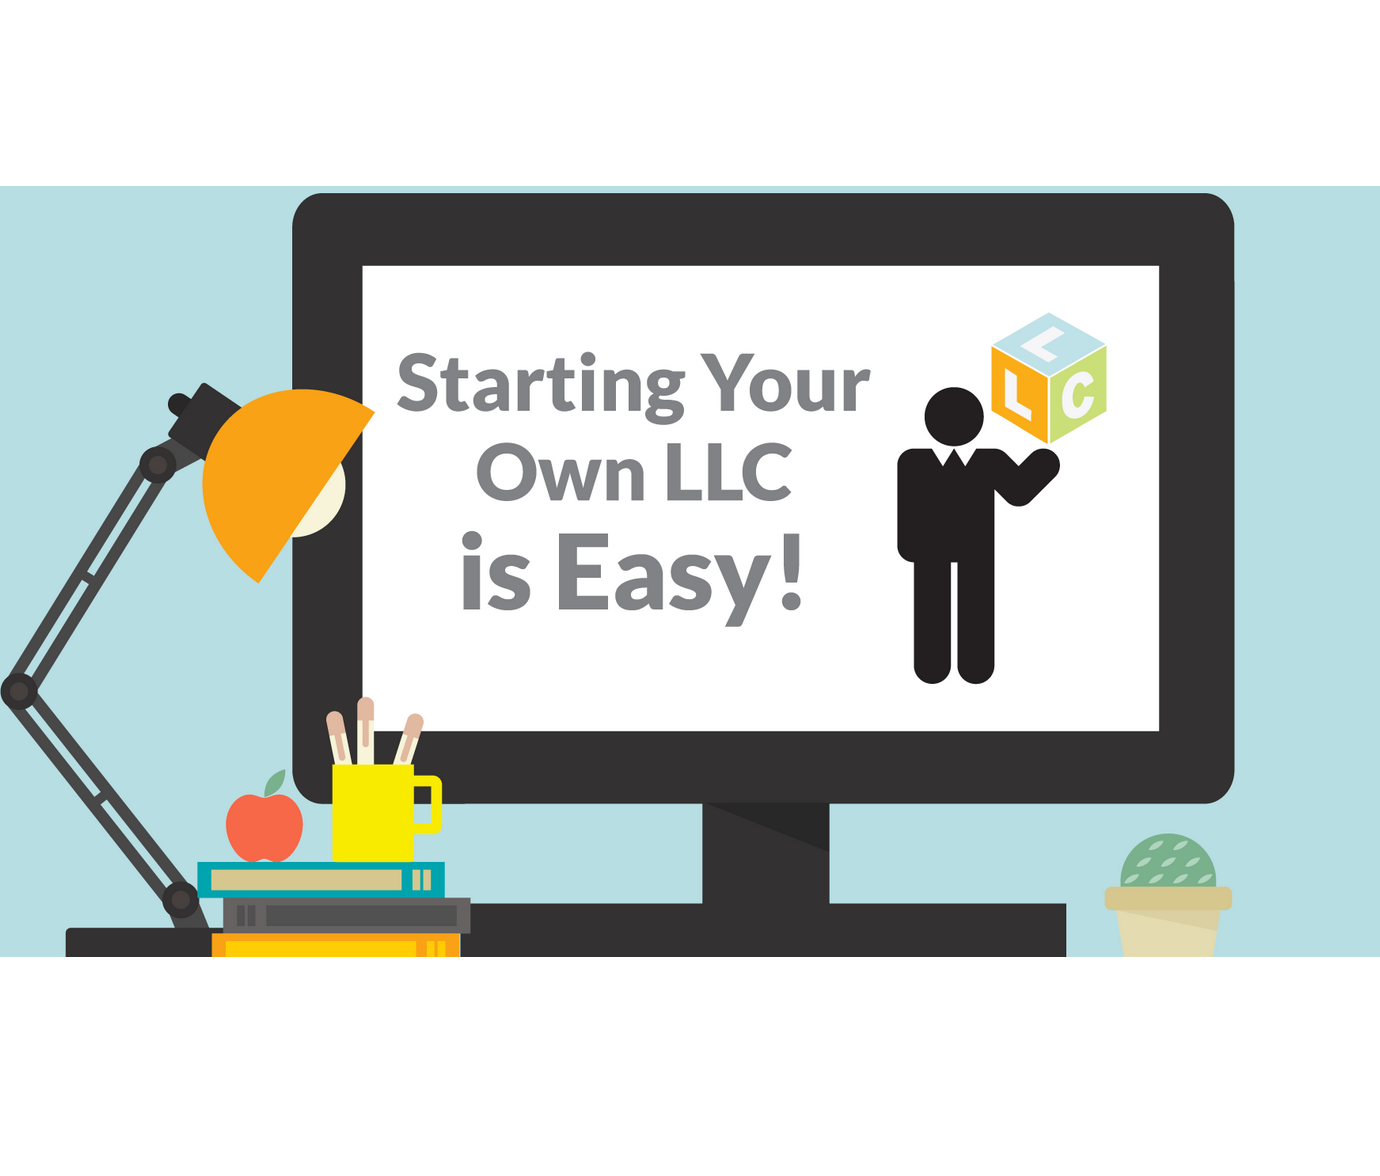 Start Your LLC In 3 Easy Steps